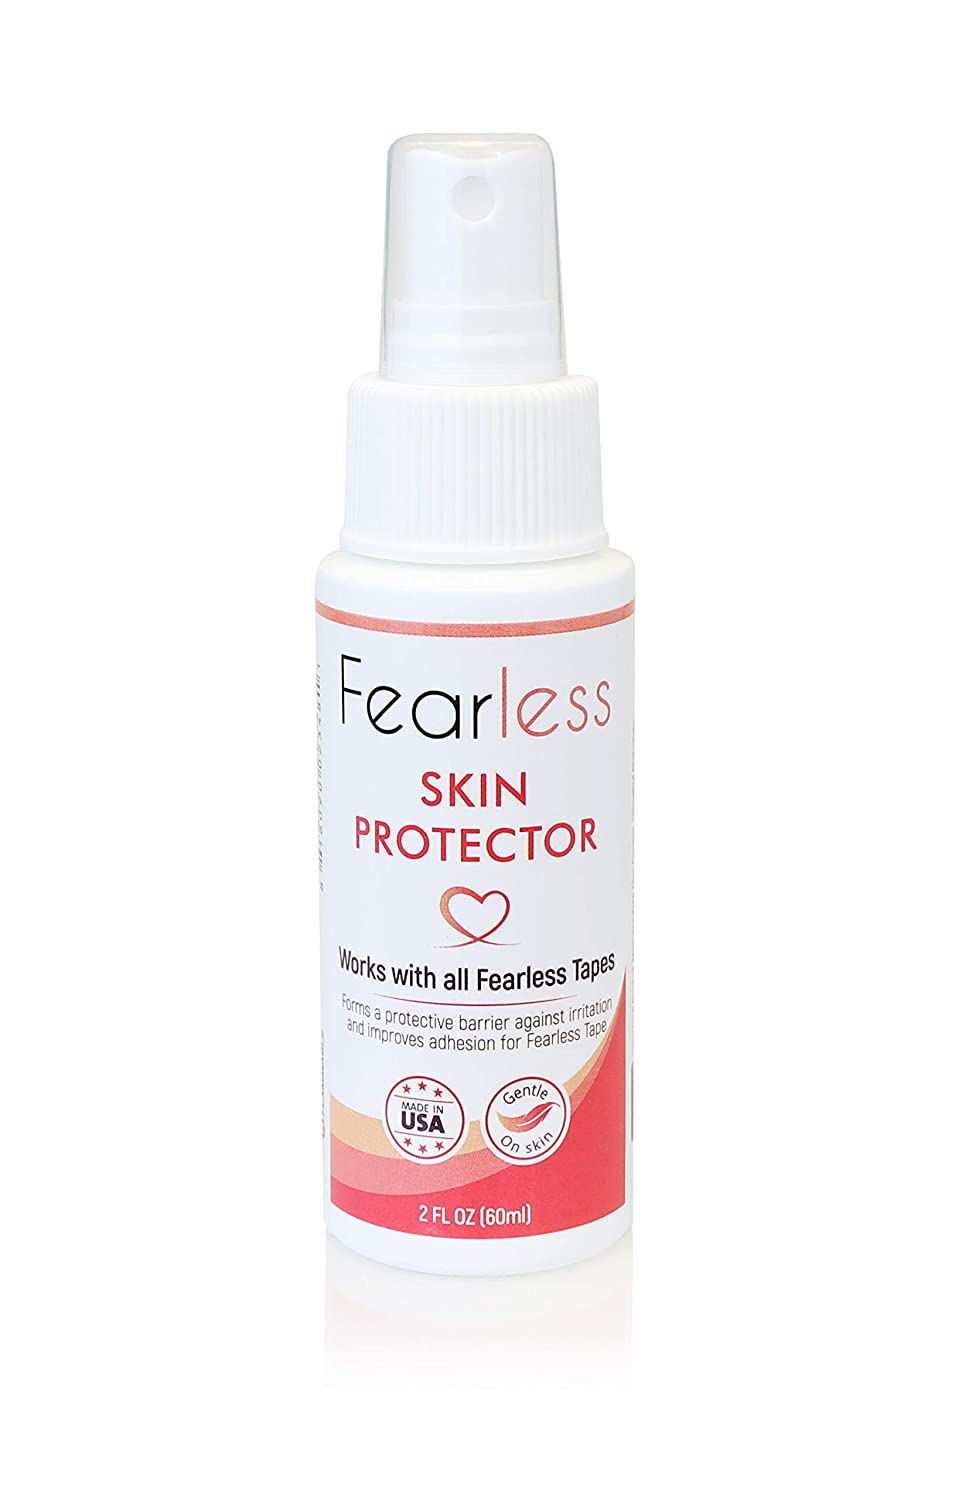 Skin Protector by Fearless Tape - 2 oz - Protect Your Skin While Using Double Sided Tape for Fashion